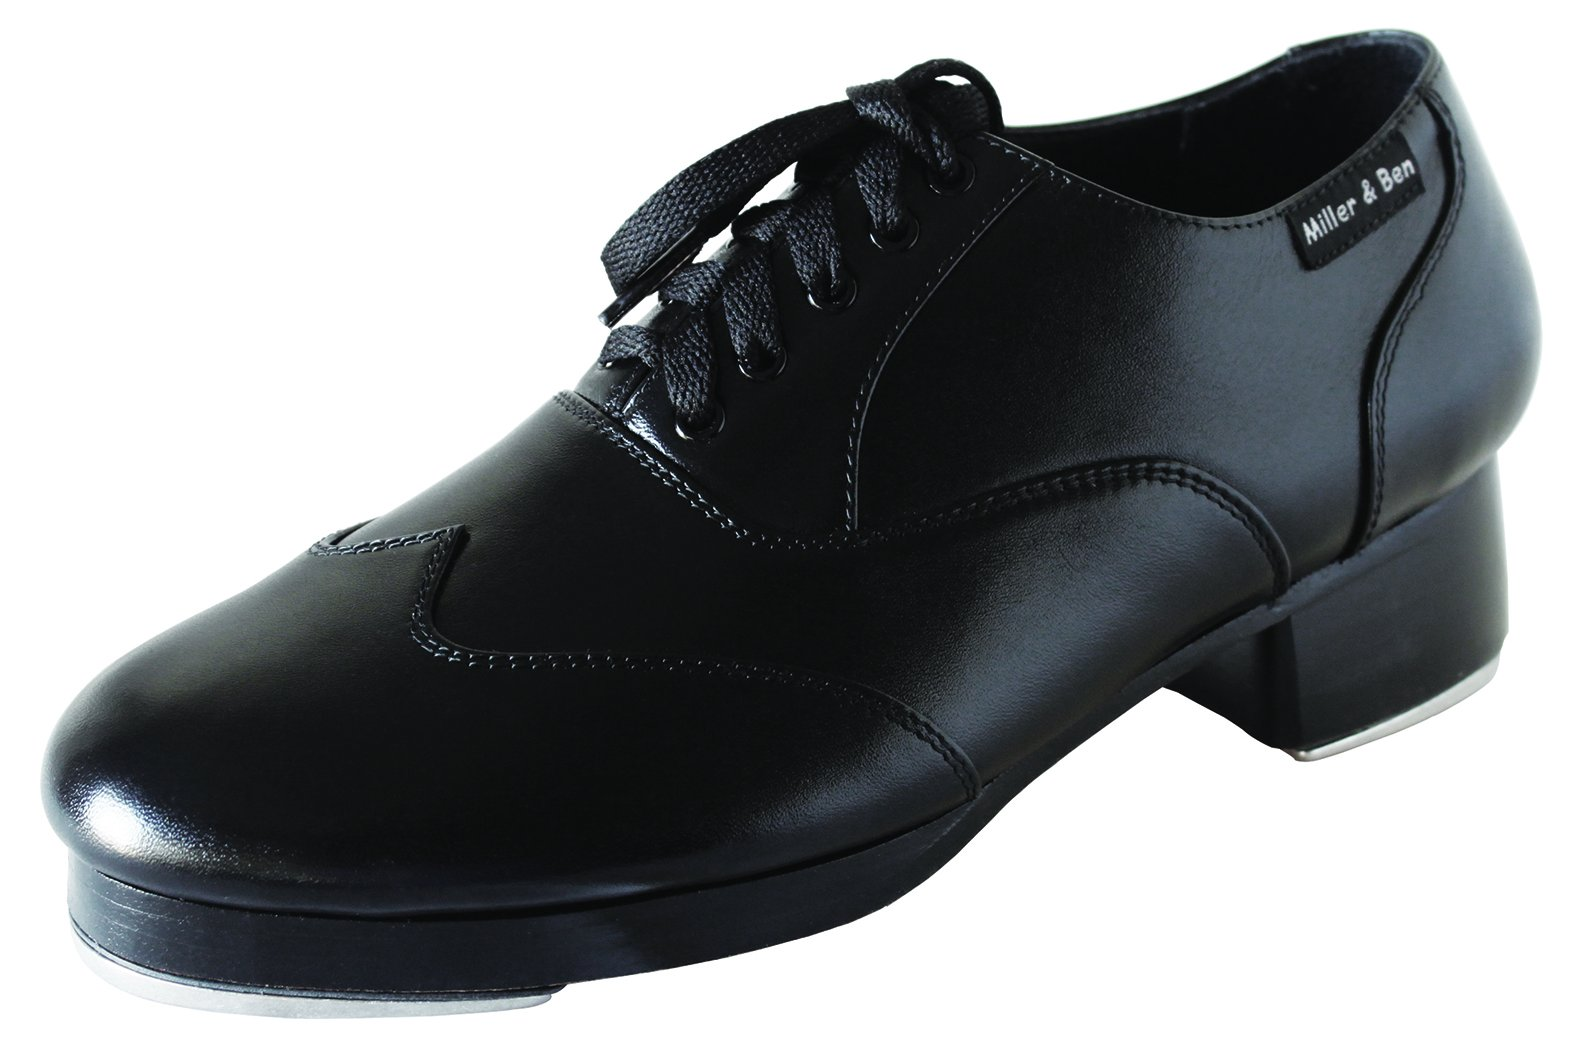 Miller & Ben Tap Shoes; Triple Threat; All Black - Wide Sizes ONLY (39 Wide)